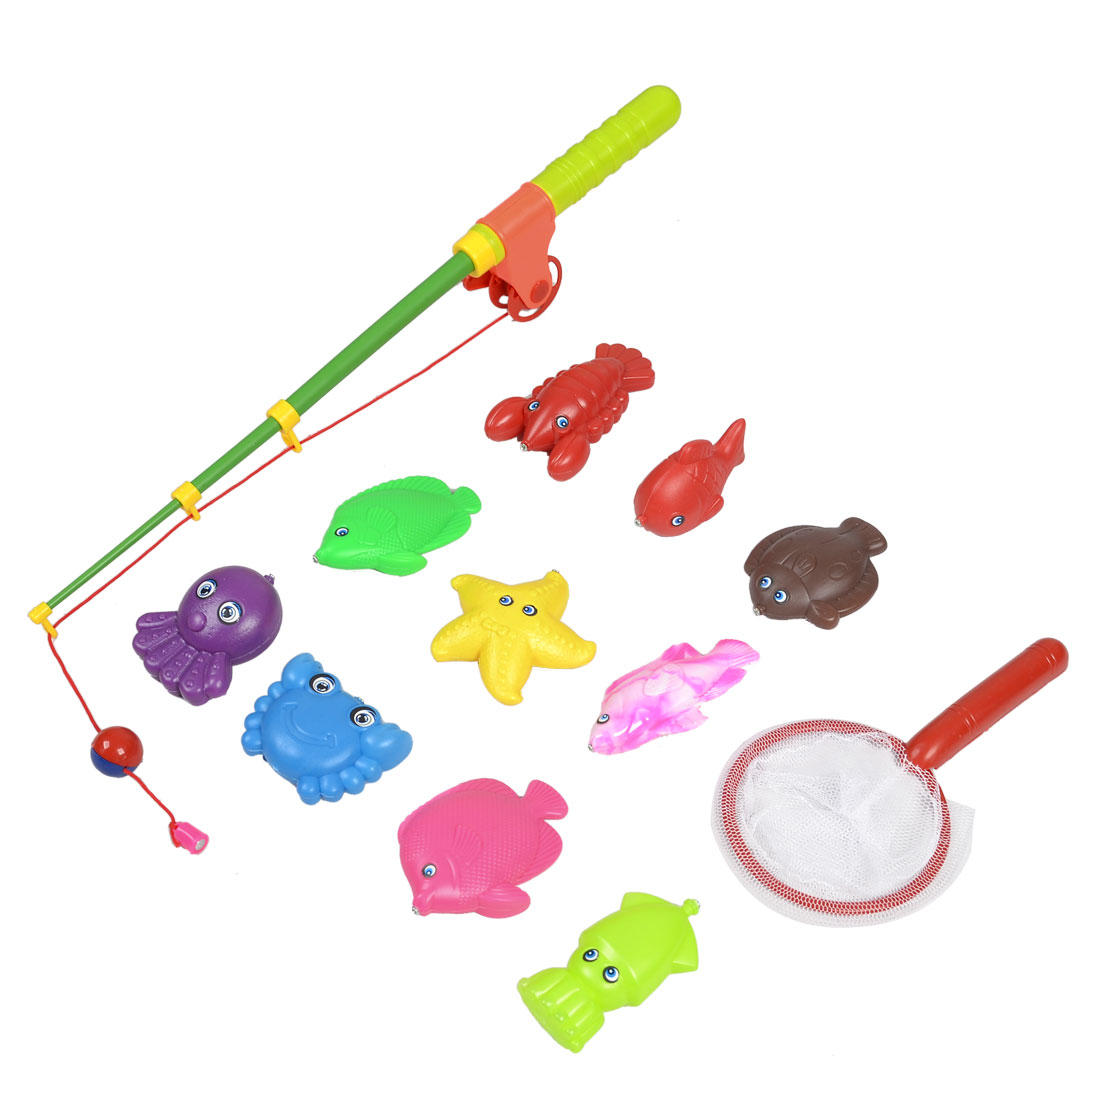 Child Plastic Retractable Rod Magnetic Lobster Starfish Octopus Fishing Toy Set 12 in 1